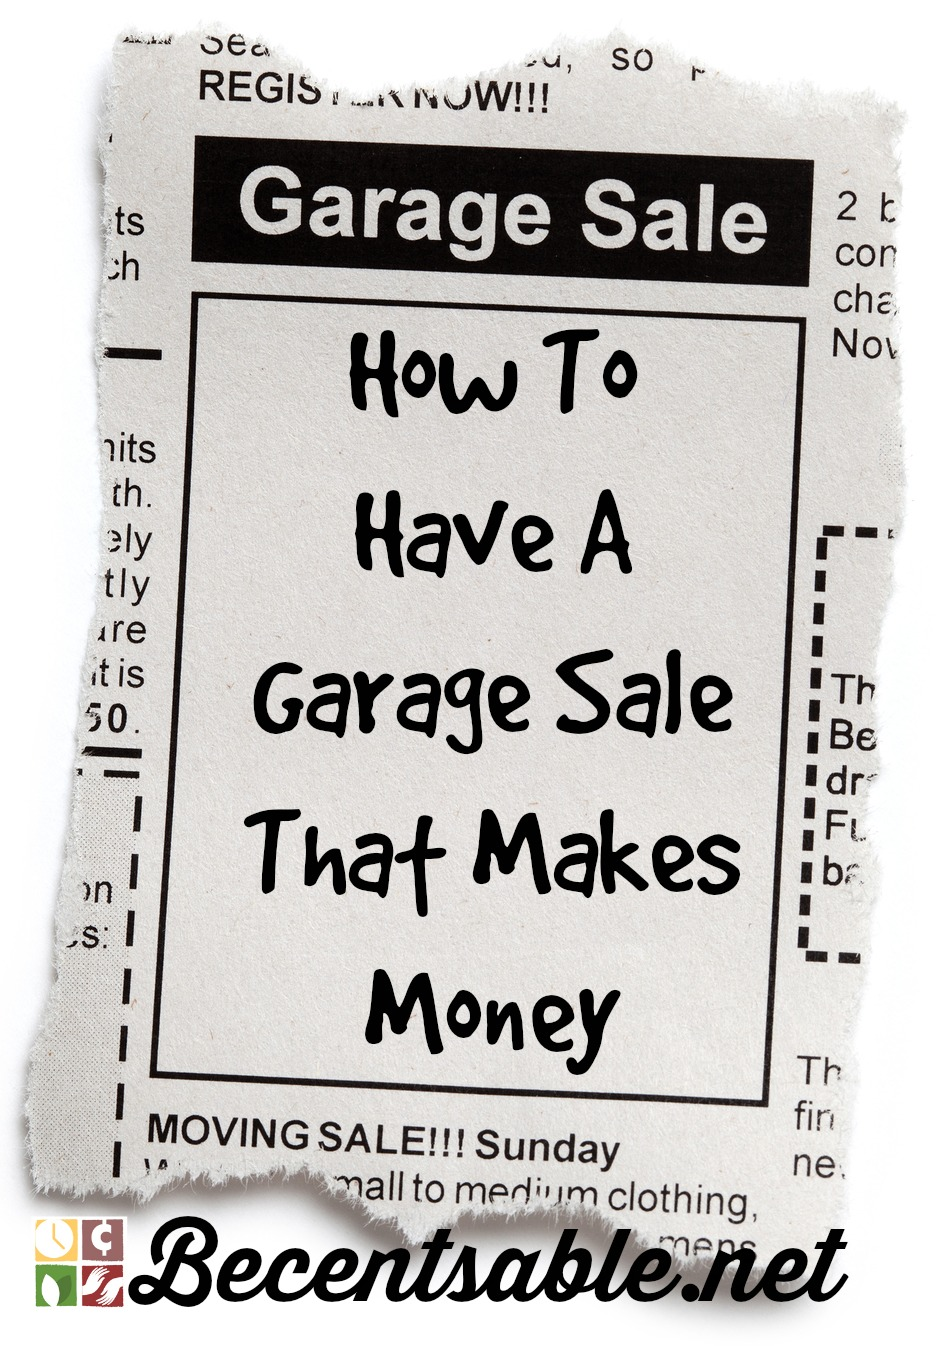 Garage Sale Book Prices Garage Sale Tips How To Have A Garage Sale That Makes Money